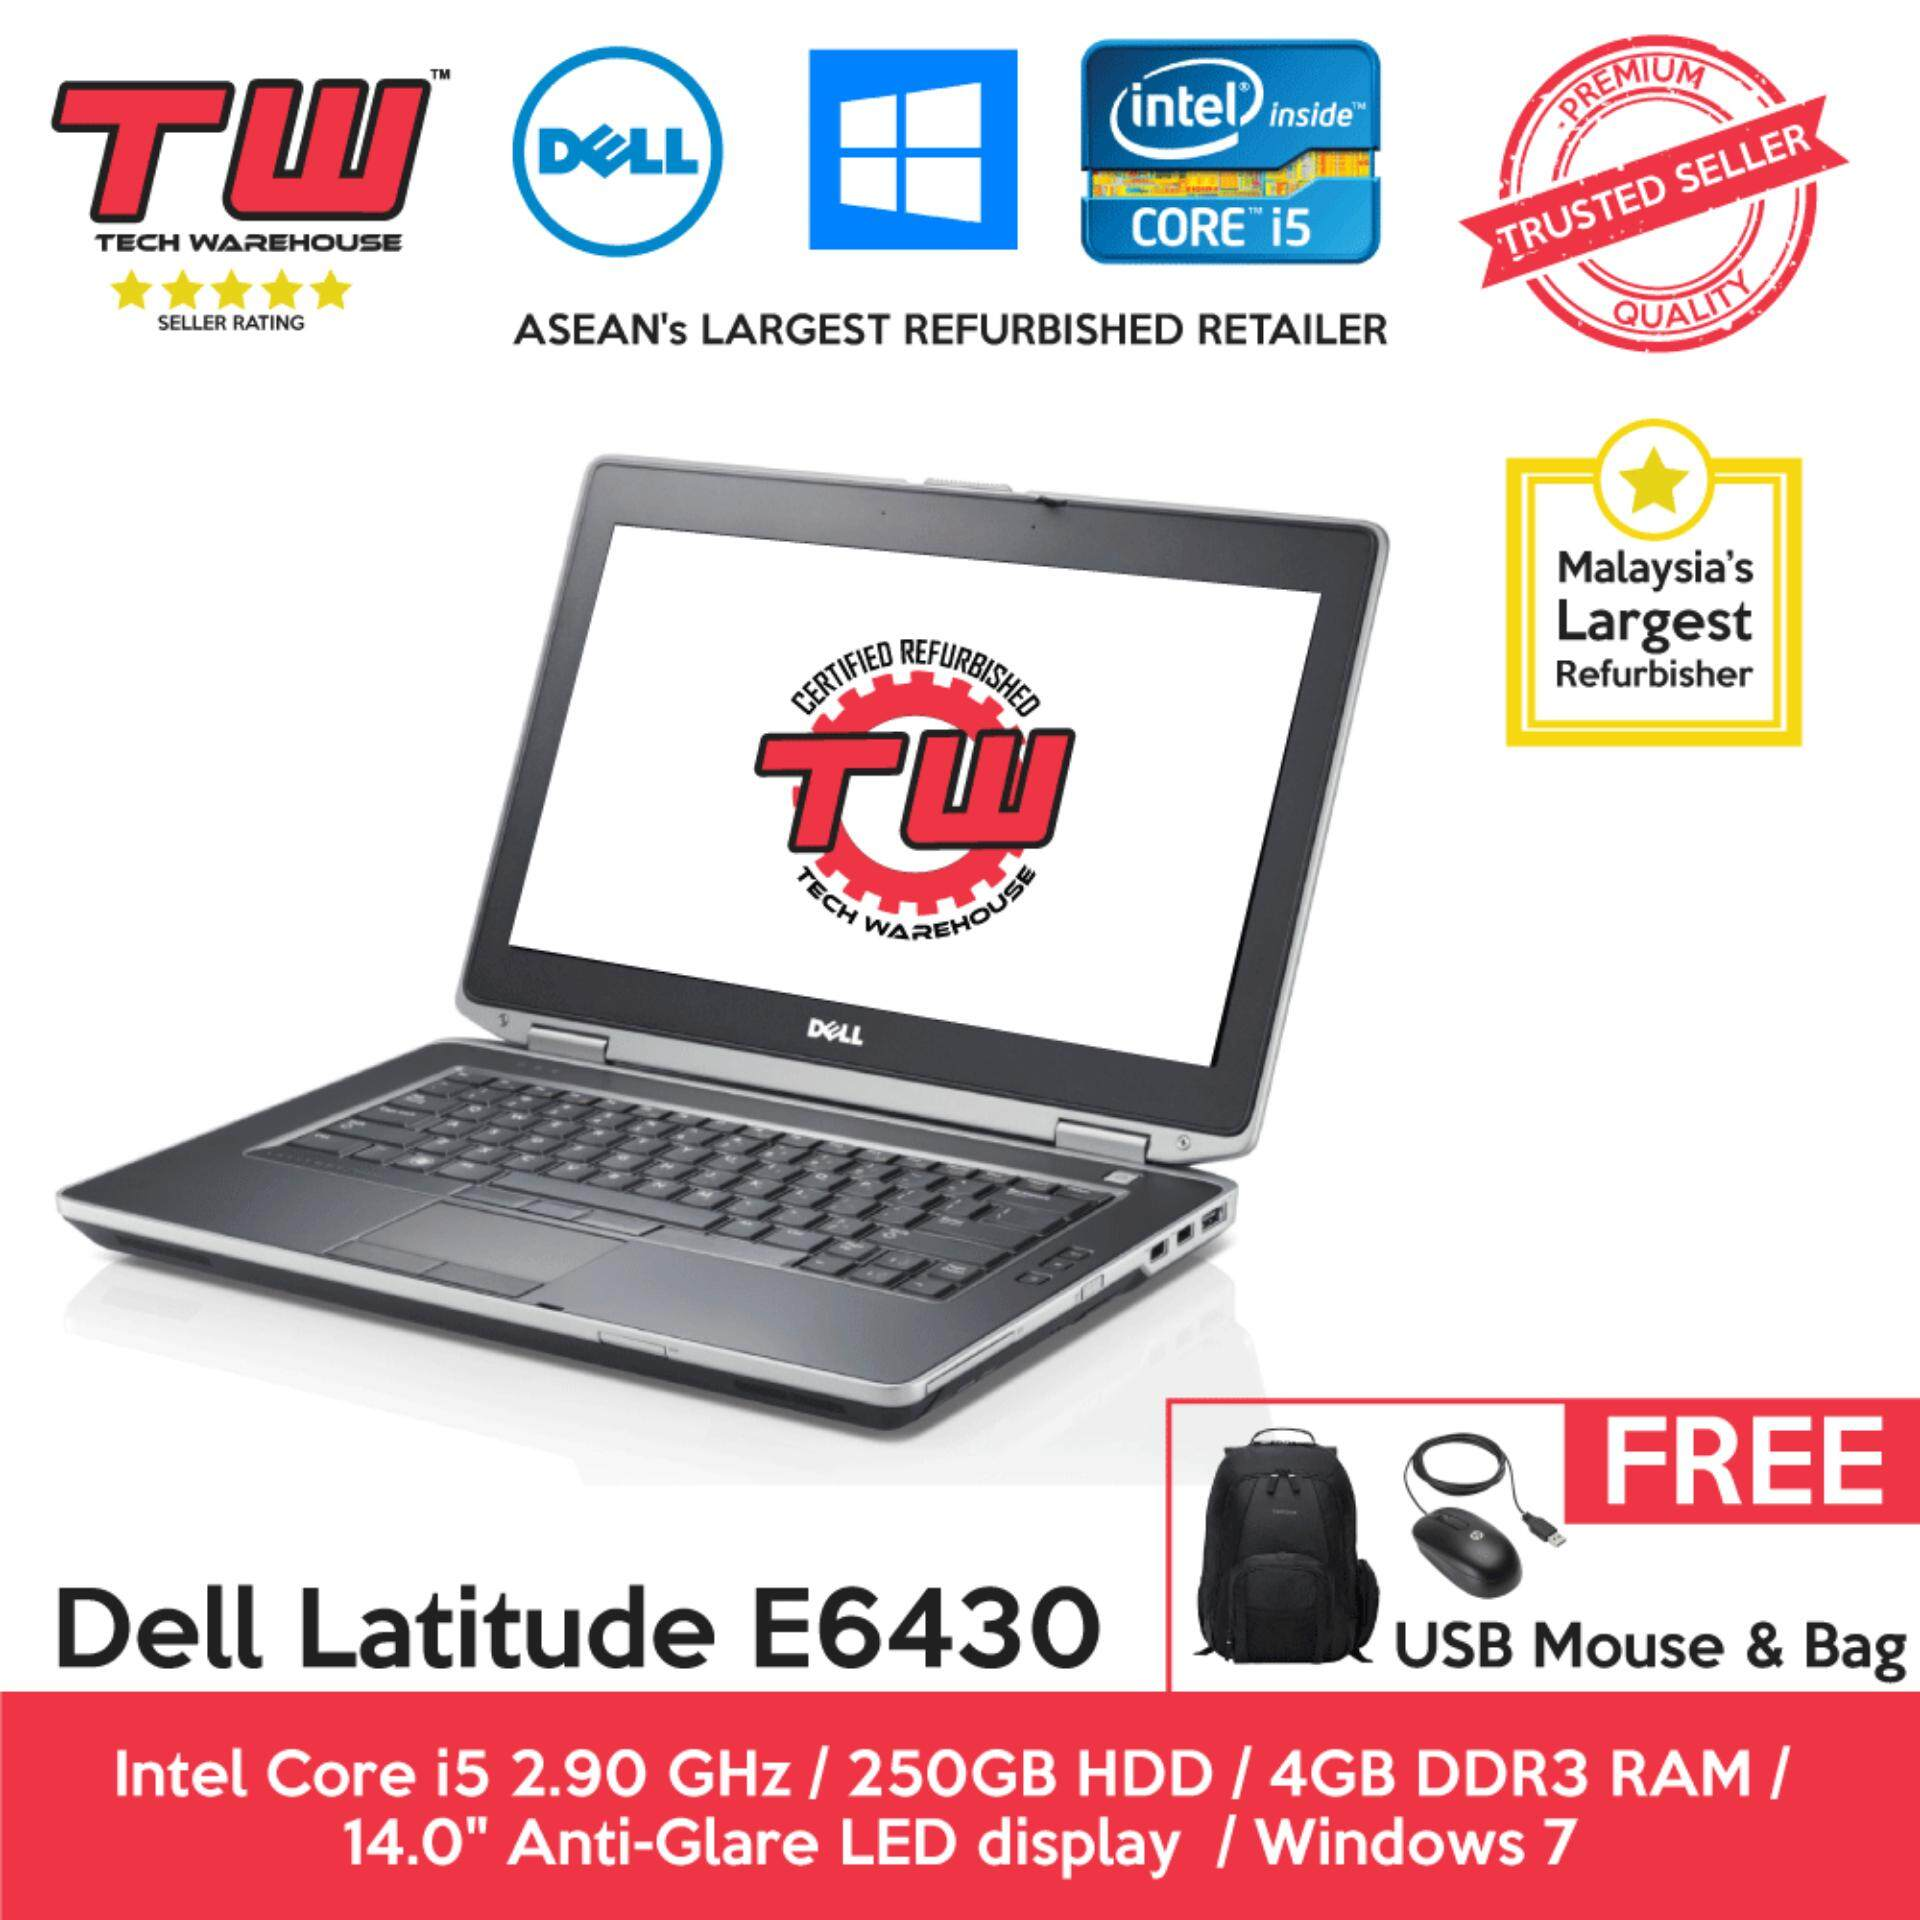 Dell Latitude E6430 Core i5 3rd Generation / 4GB RAM / 250GB HDD / Windows 7 Laptop / 3 Month Warranty (Factory Refurbished) Malaysia